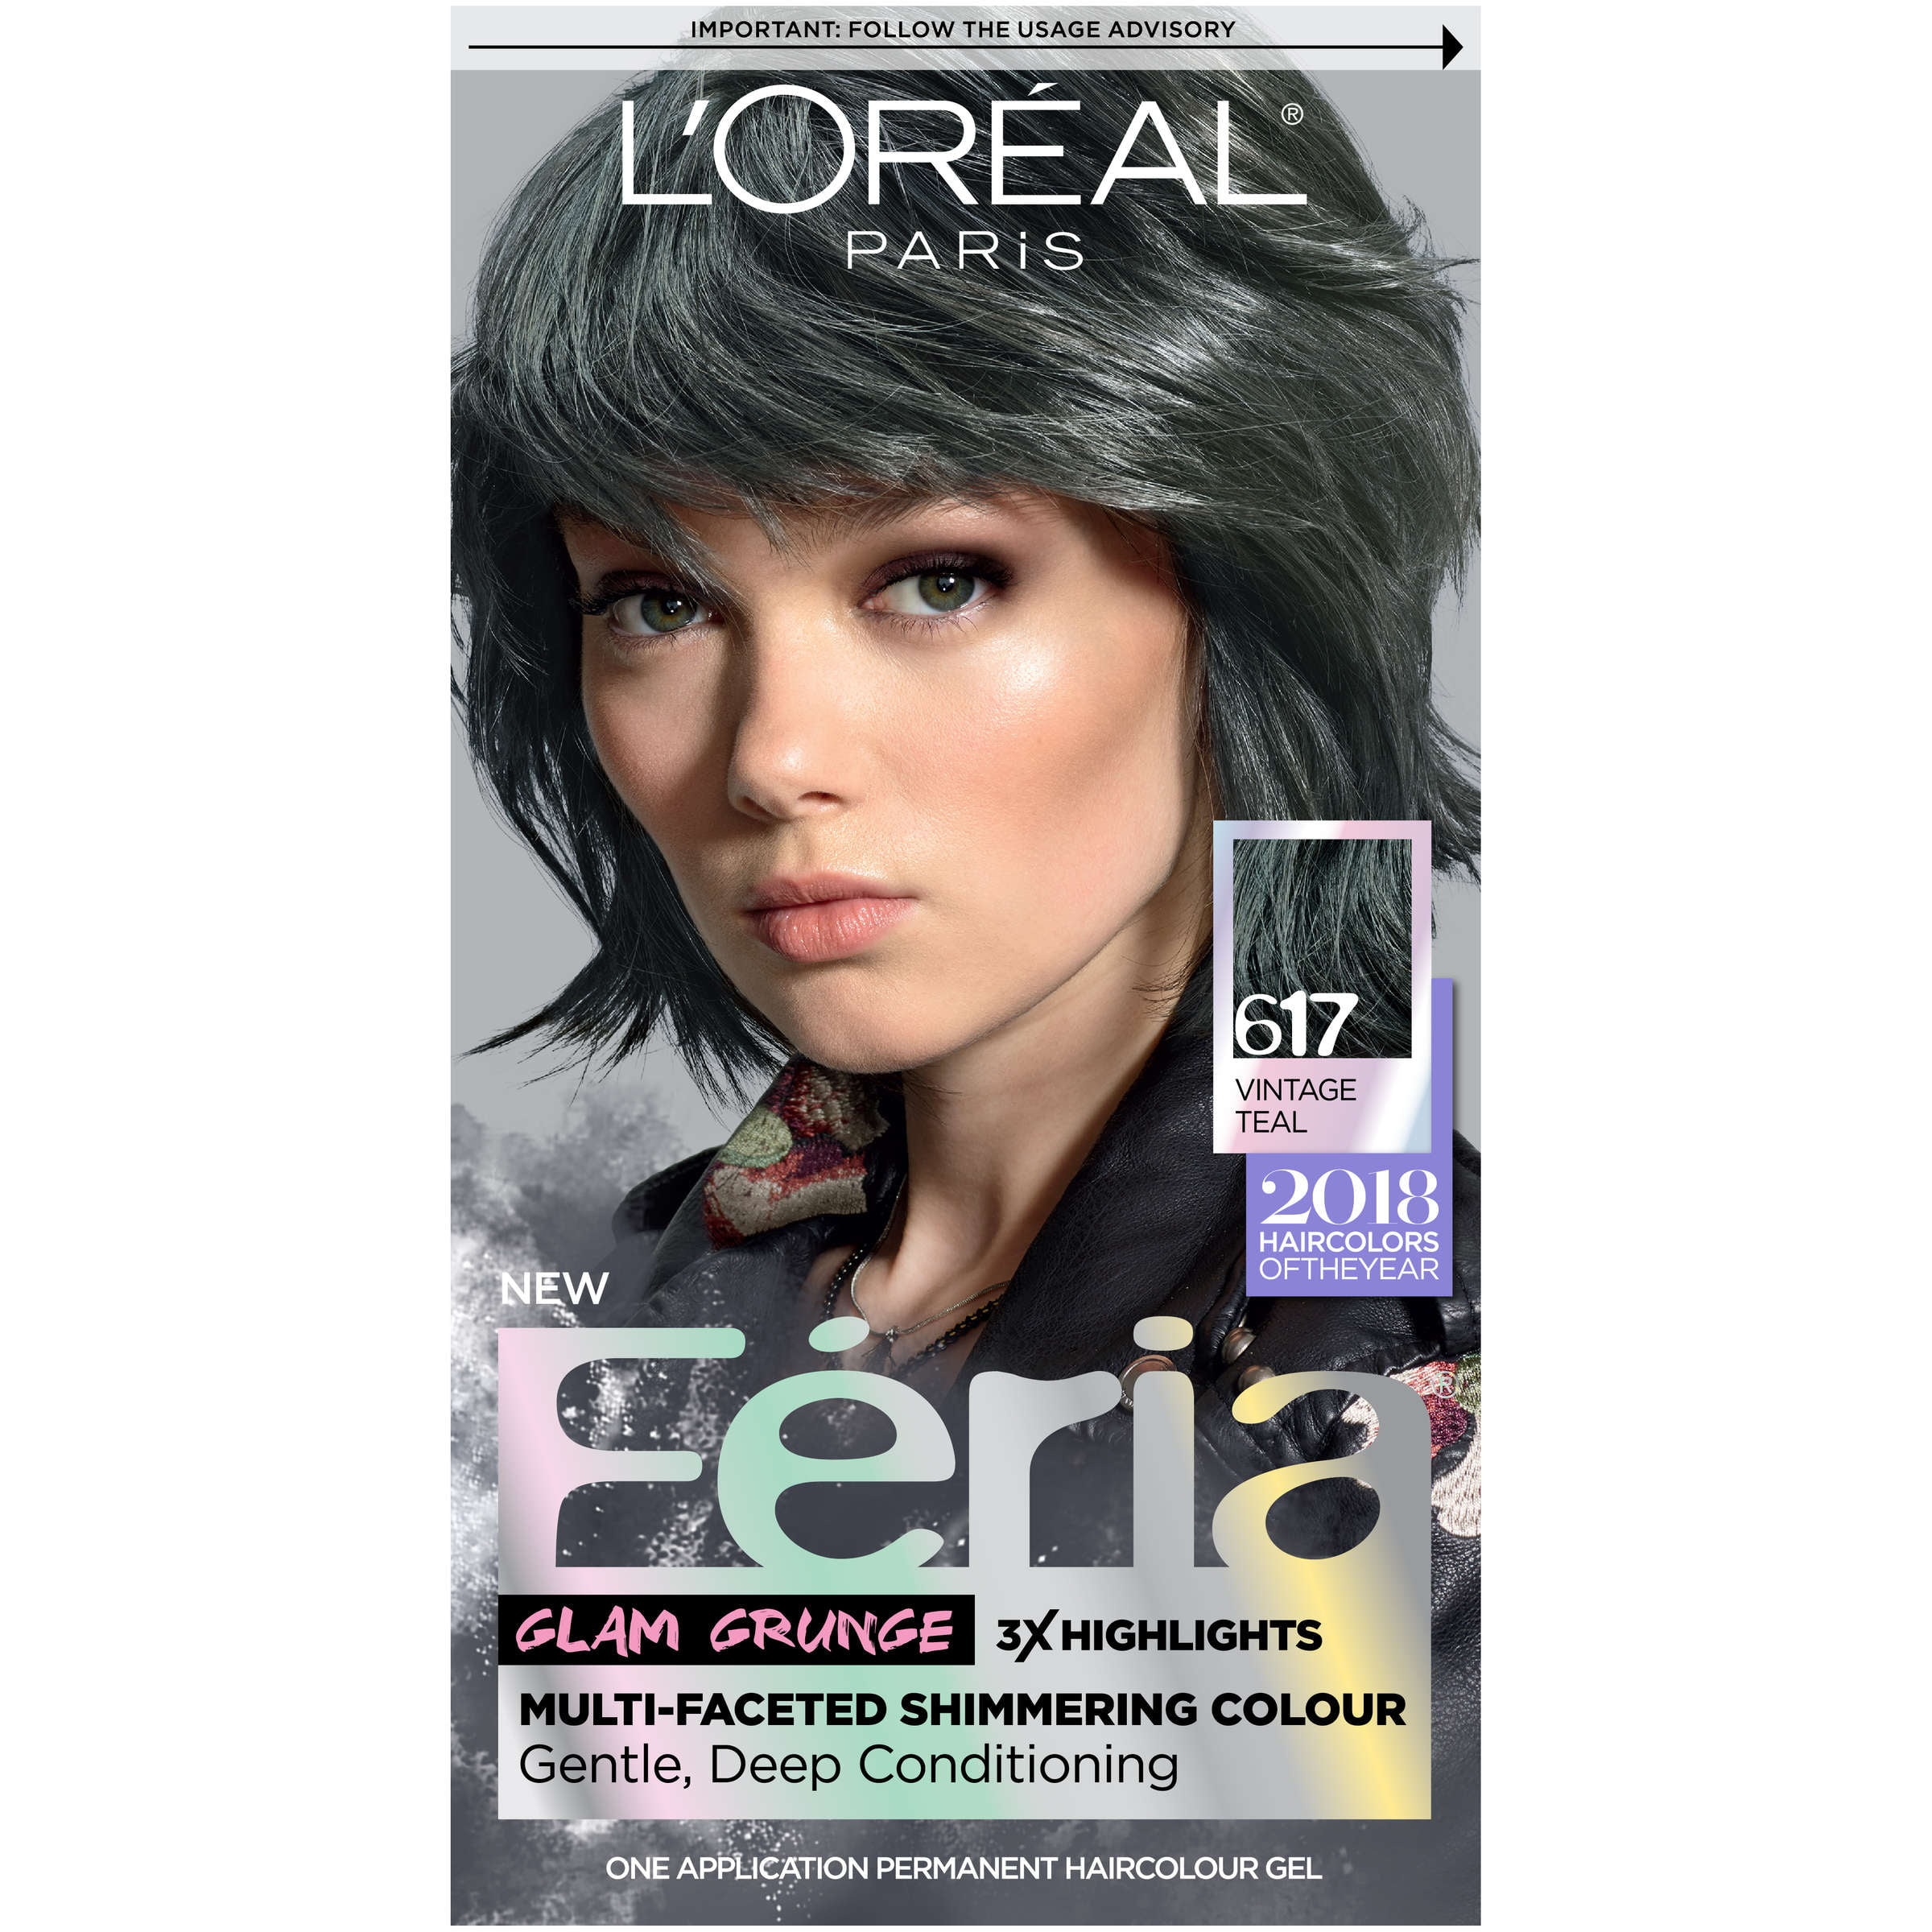 Loreal Paris Feria Permanent Hair Color 617 Vintage Teal Walmart